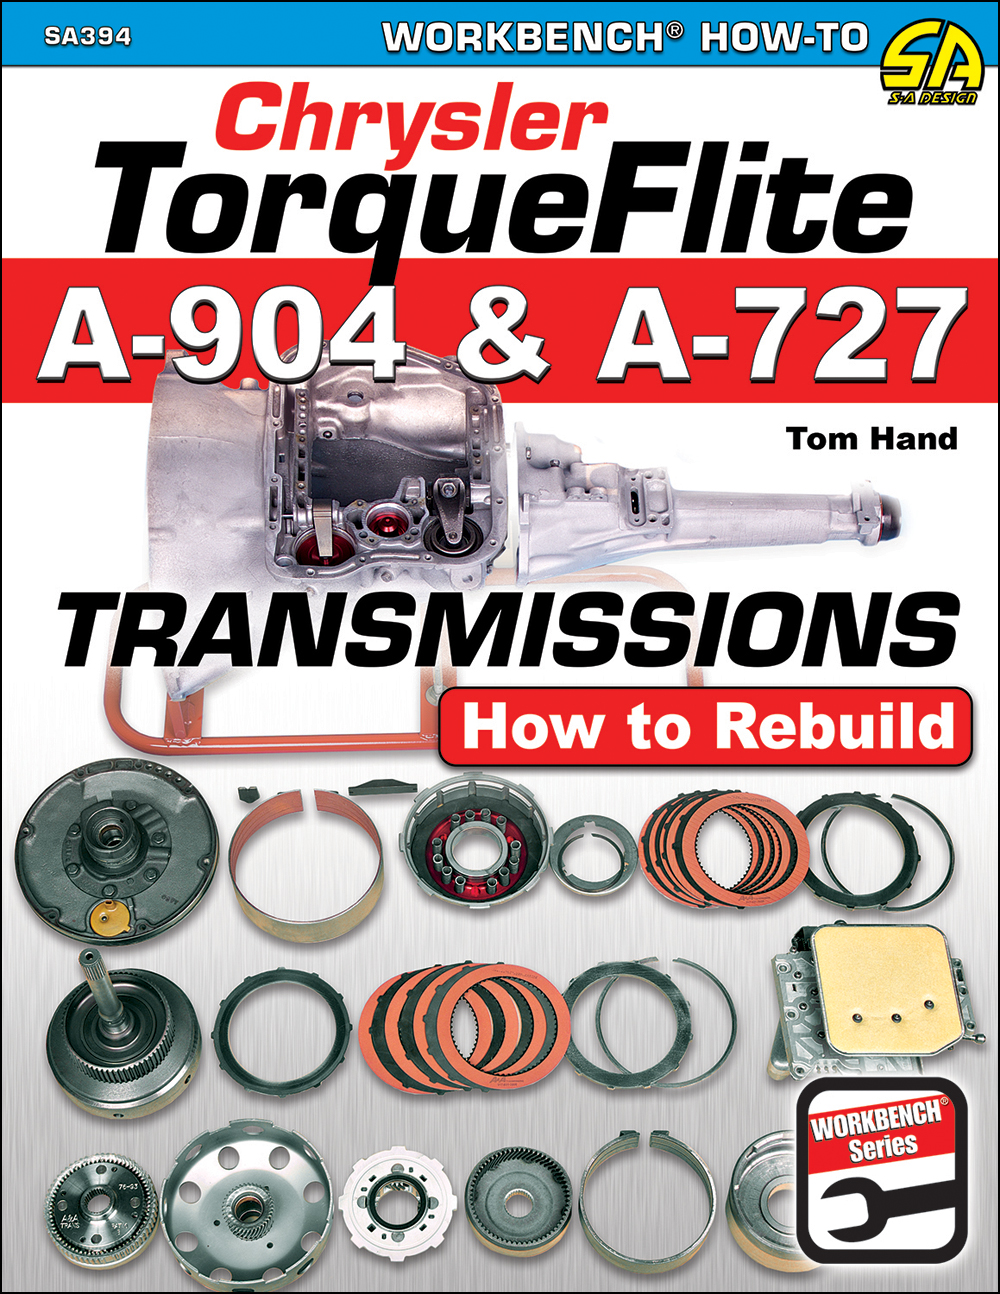 How to Rebuild Chrysler TorqueFlite Transmissions A-904 & A-727